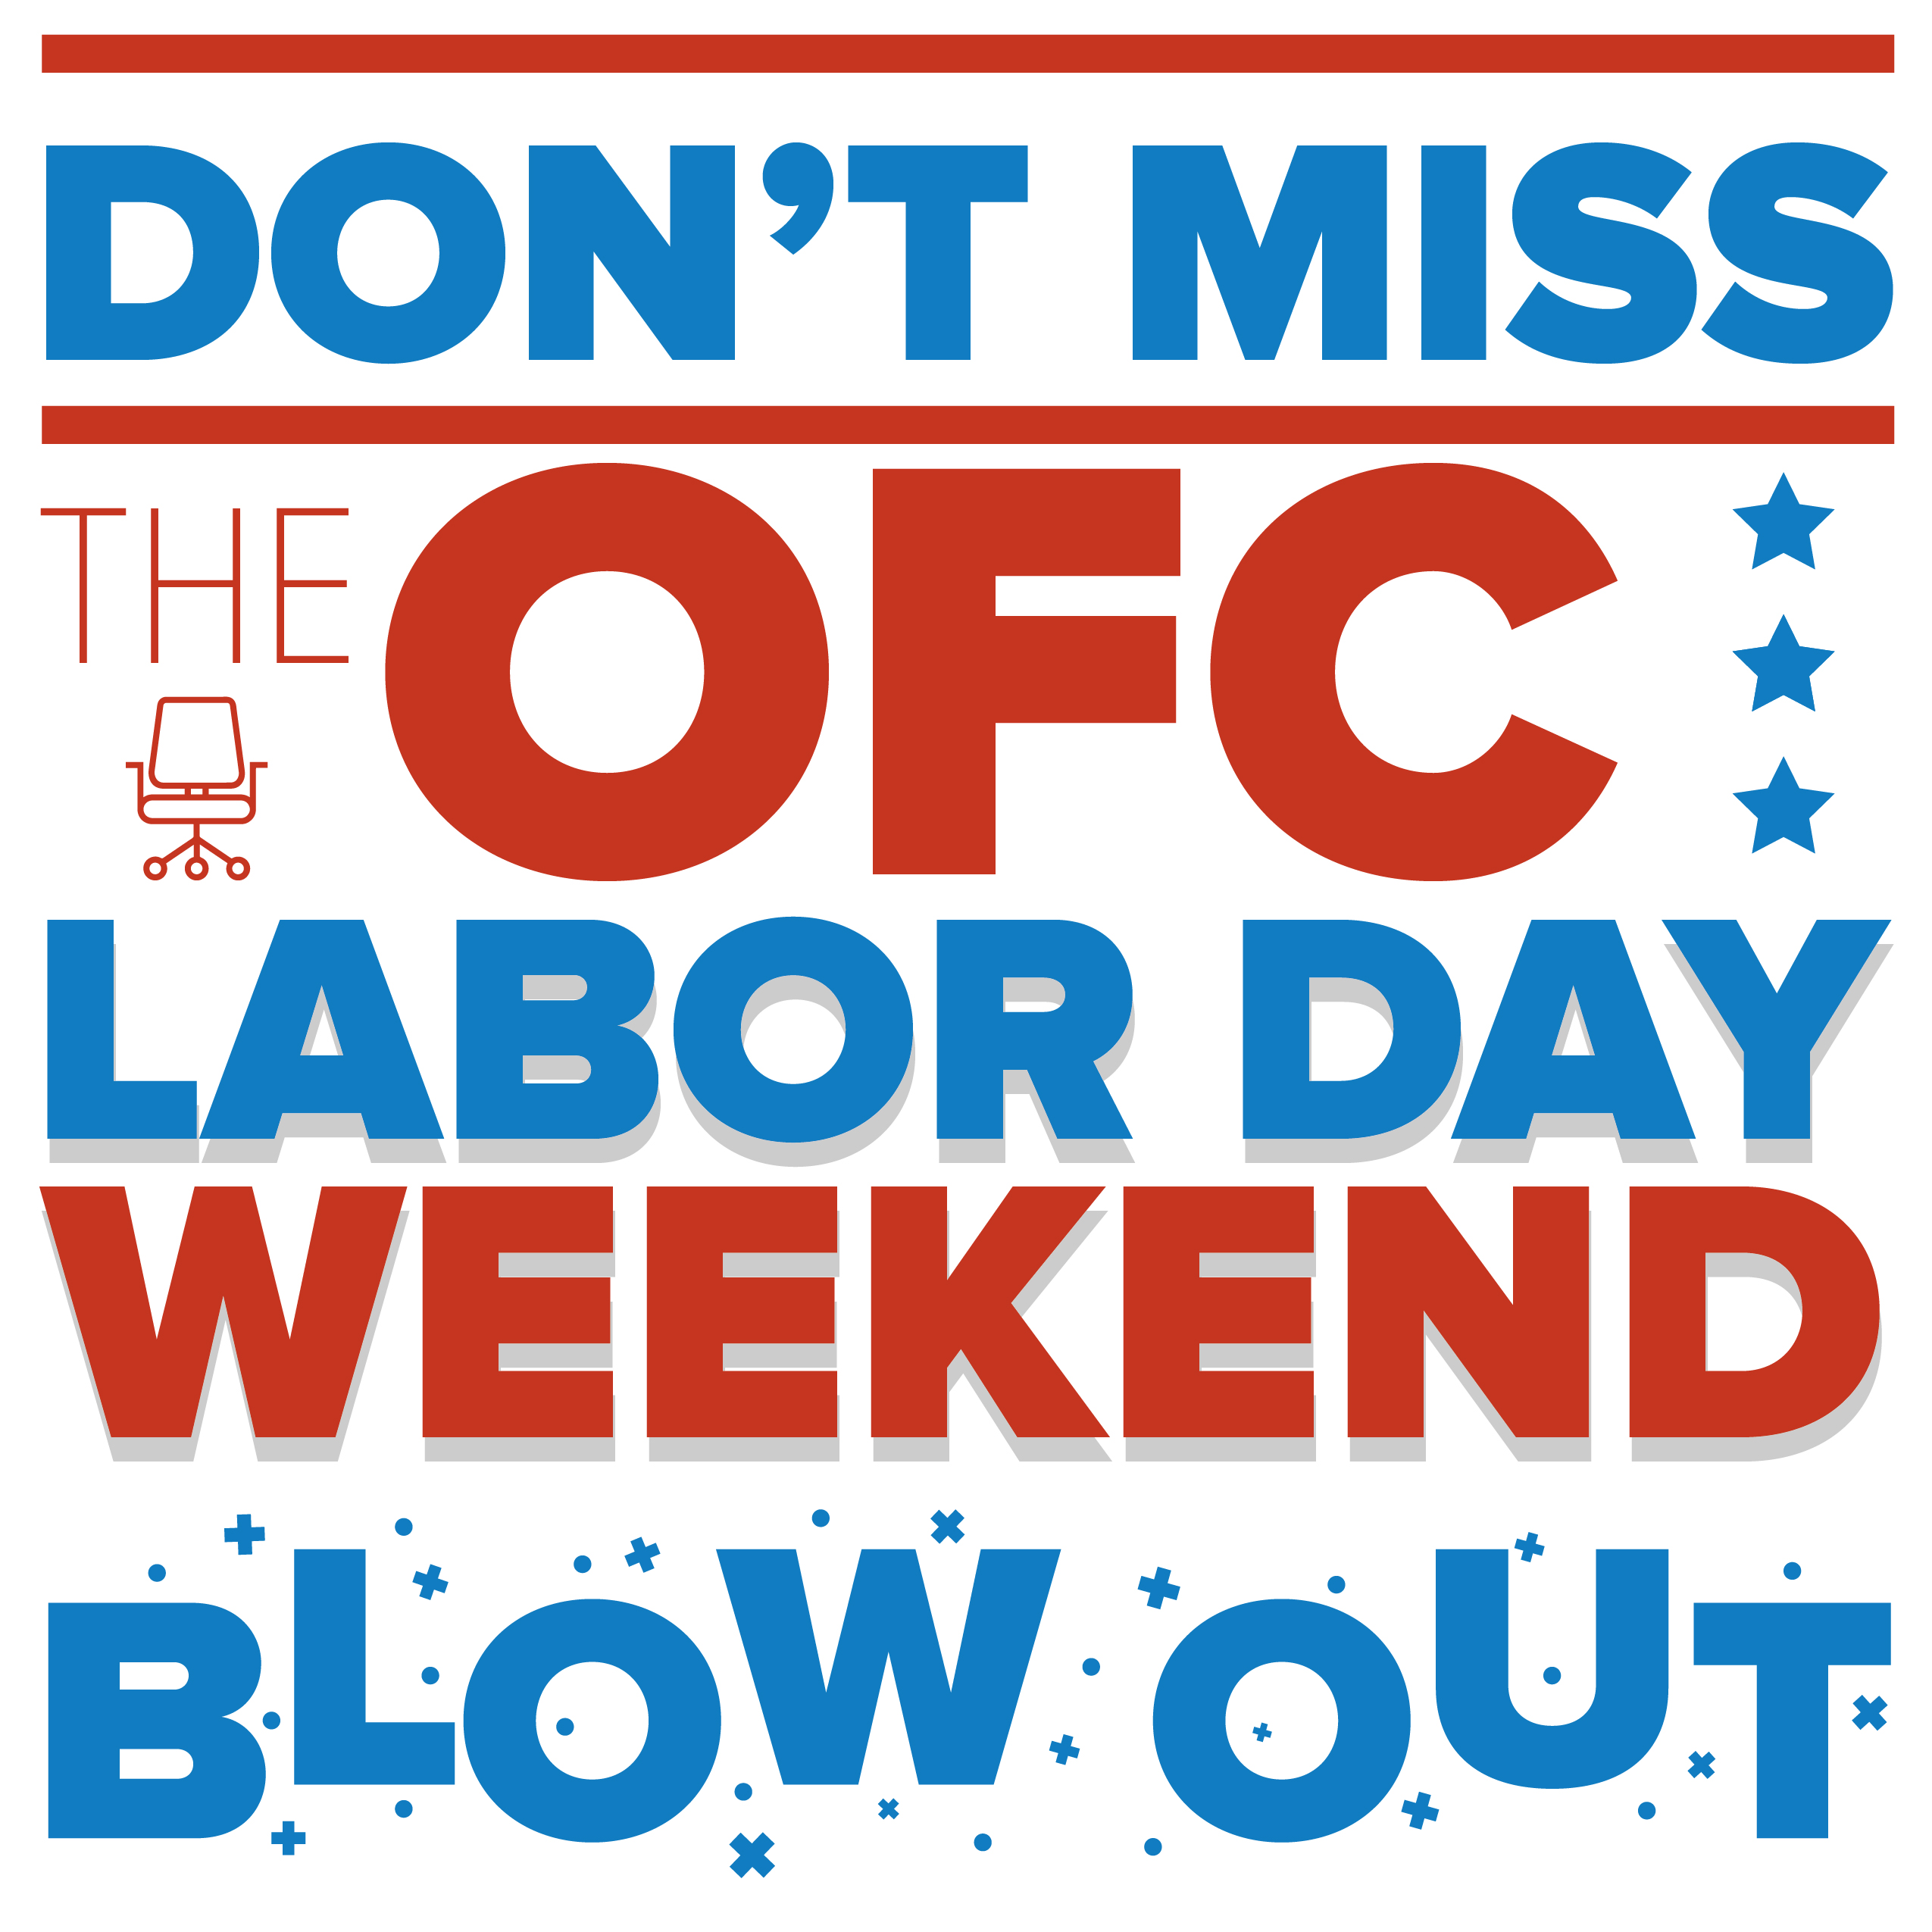 Four ways to celebrate labor day in your office office for Labor day weekend furniture sales